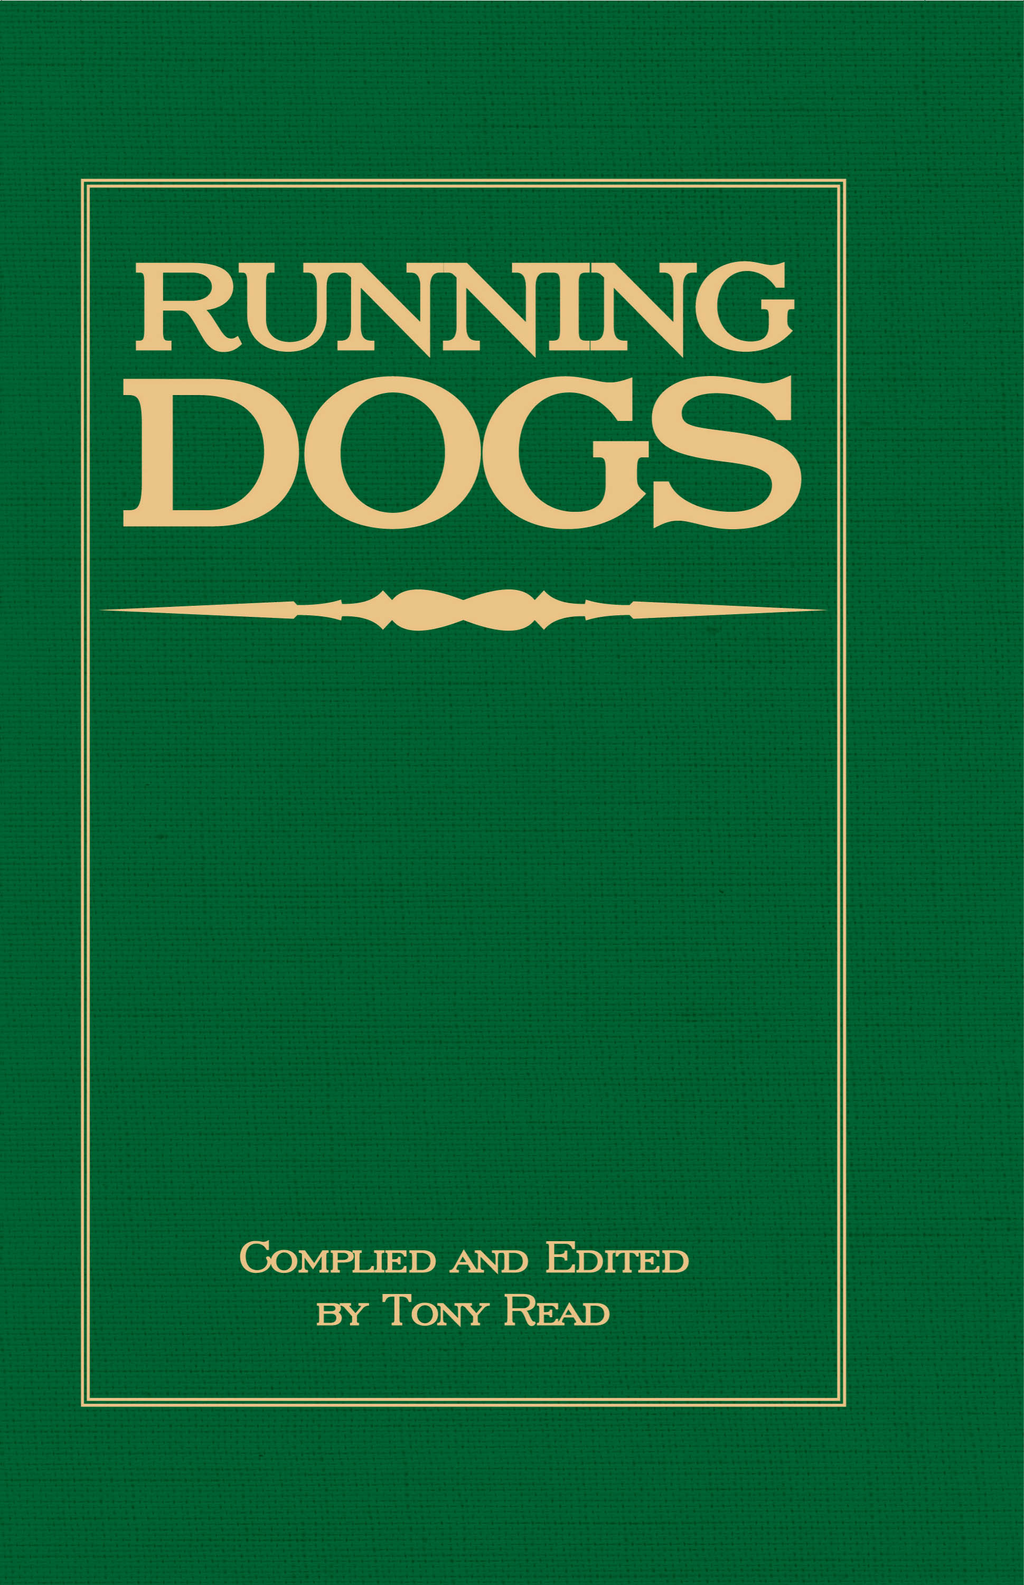 Running Dogs - Or, Dogs That Hunt By Sight - The Early History, Origins, Breeding & Management Of Greyhounds, Whippets, Irish Wolfhounds, Deerhounds, Borzoi and Other Allied Eastern Hounds